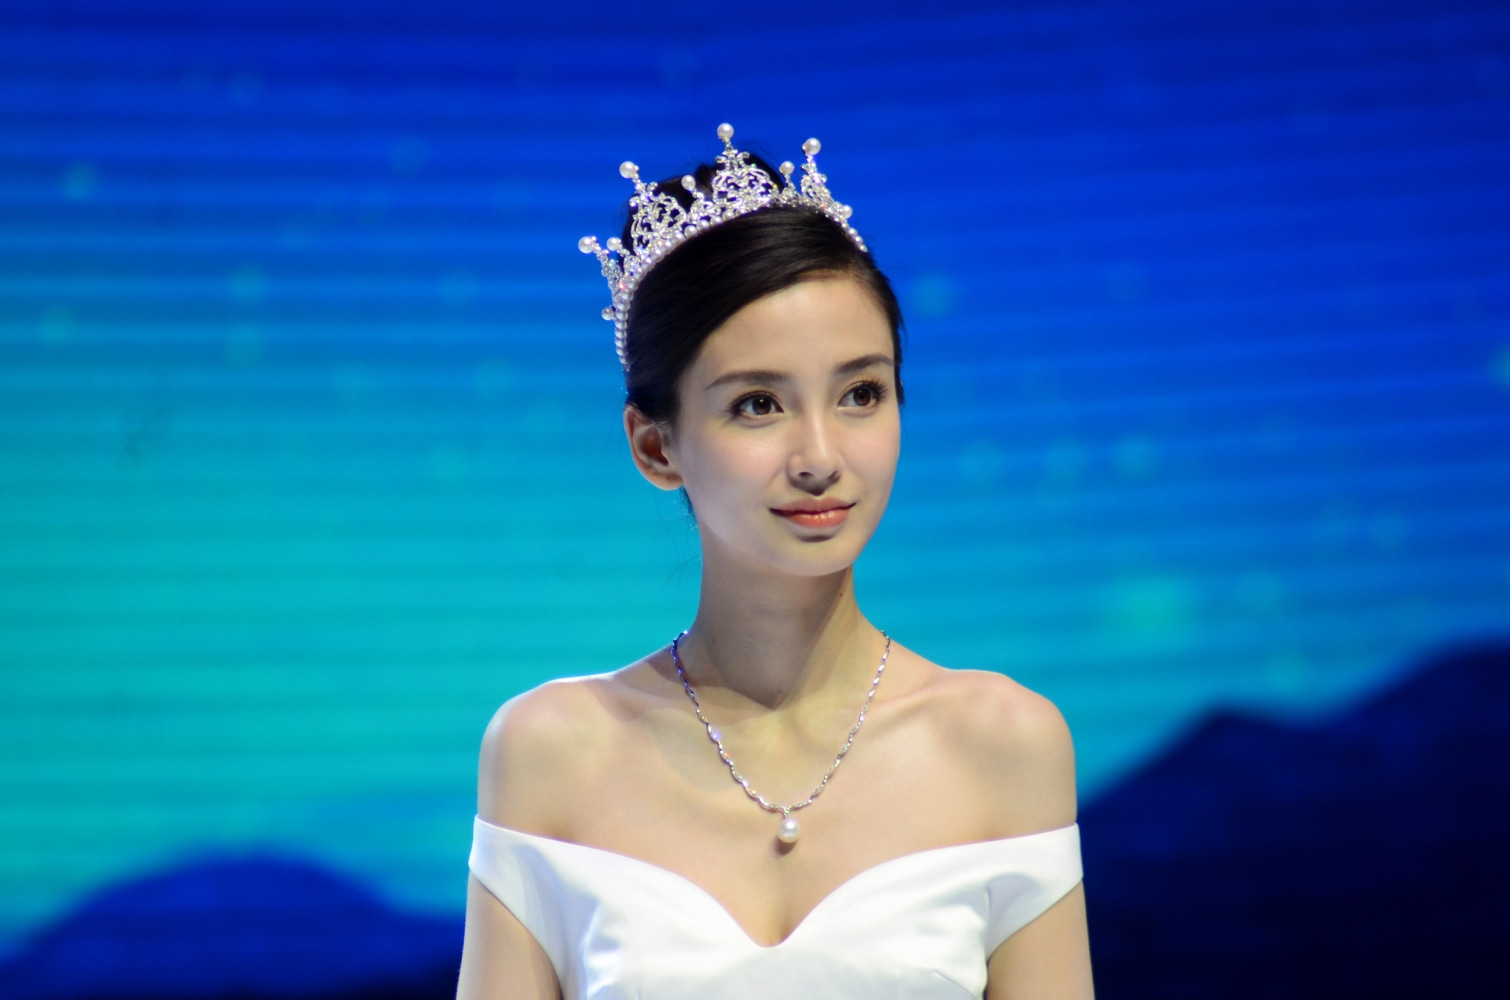 China39;s Angelababy Hasn39;t Had Plastic Surgery, Doctor Testifies  NBC